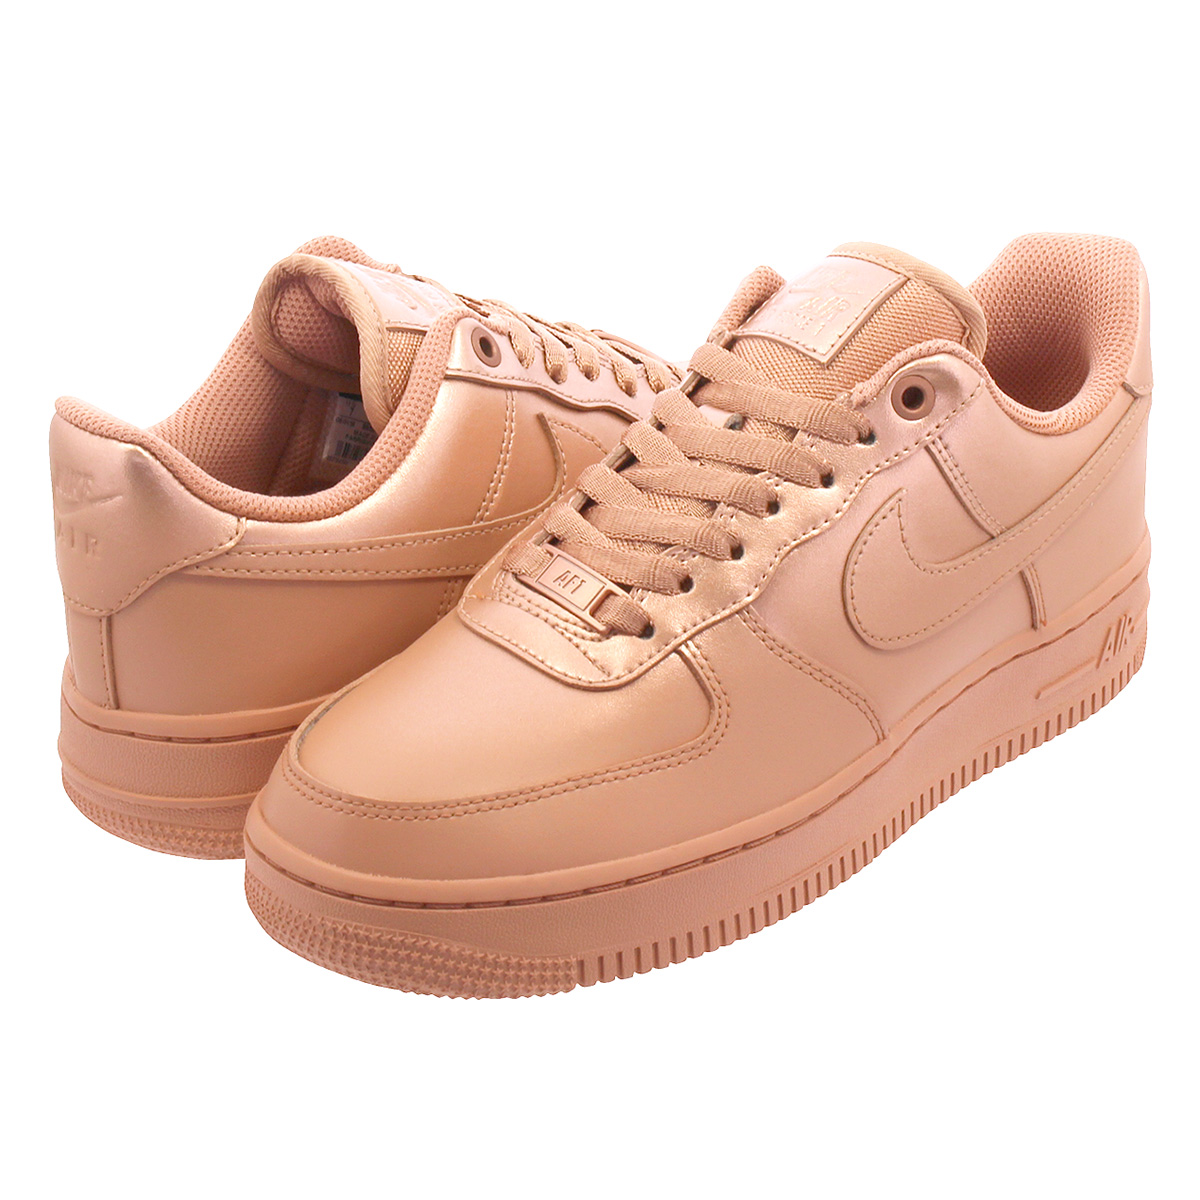 outlet store 887f5 bfaa8 NIKE WMNS AIR FORCE 1 07 LX Nike women air force 1 07 LX ROSE GOLD/METALLIC  RED/BRONZE 898,889-601